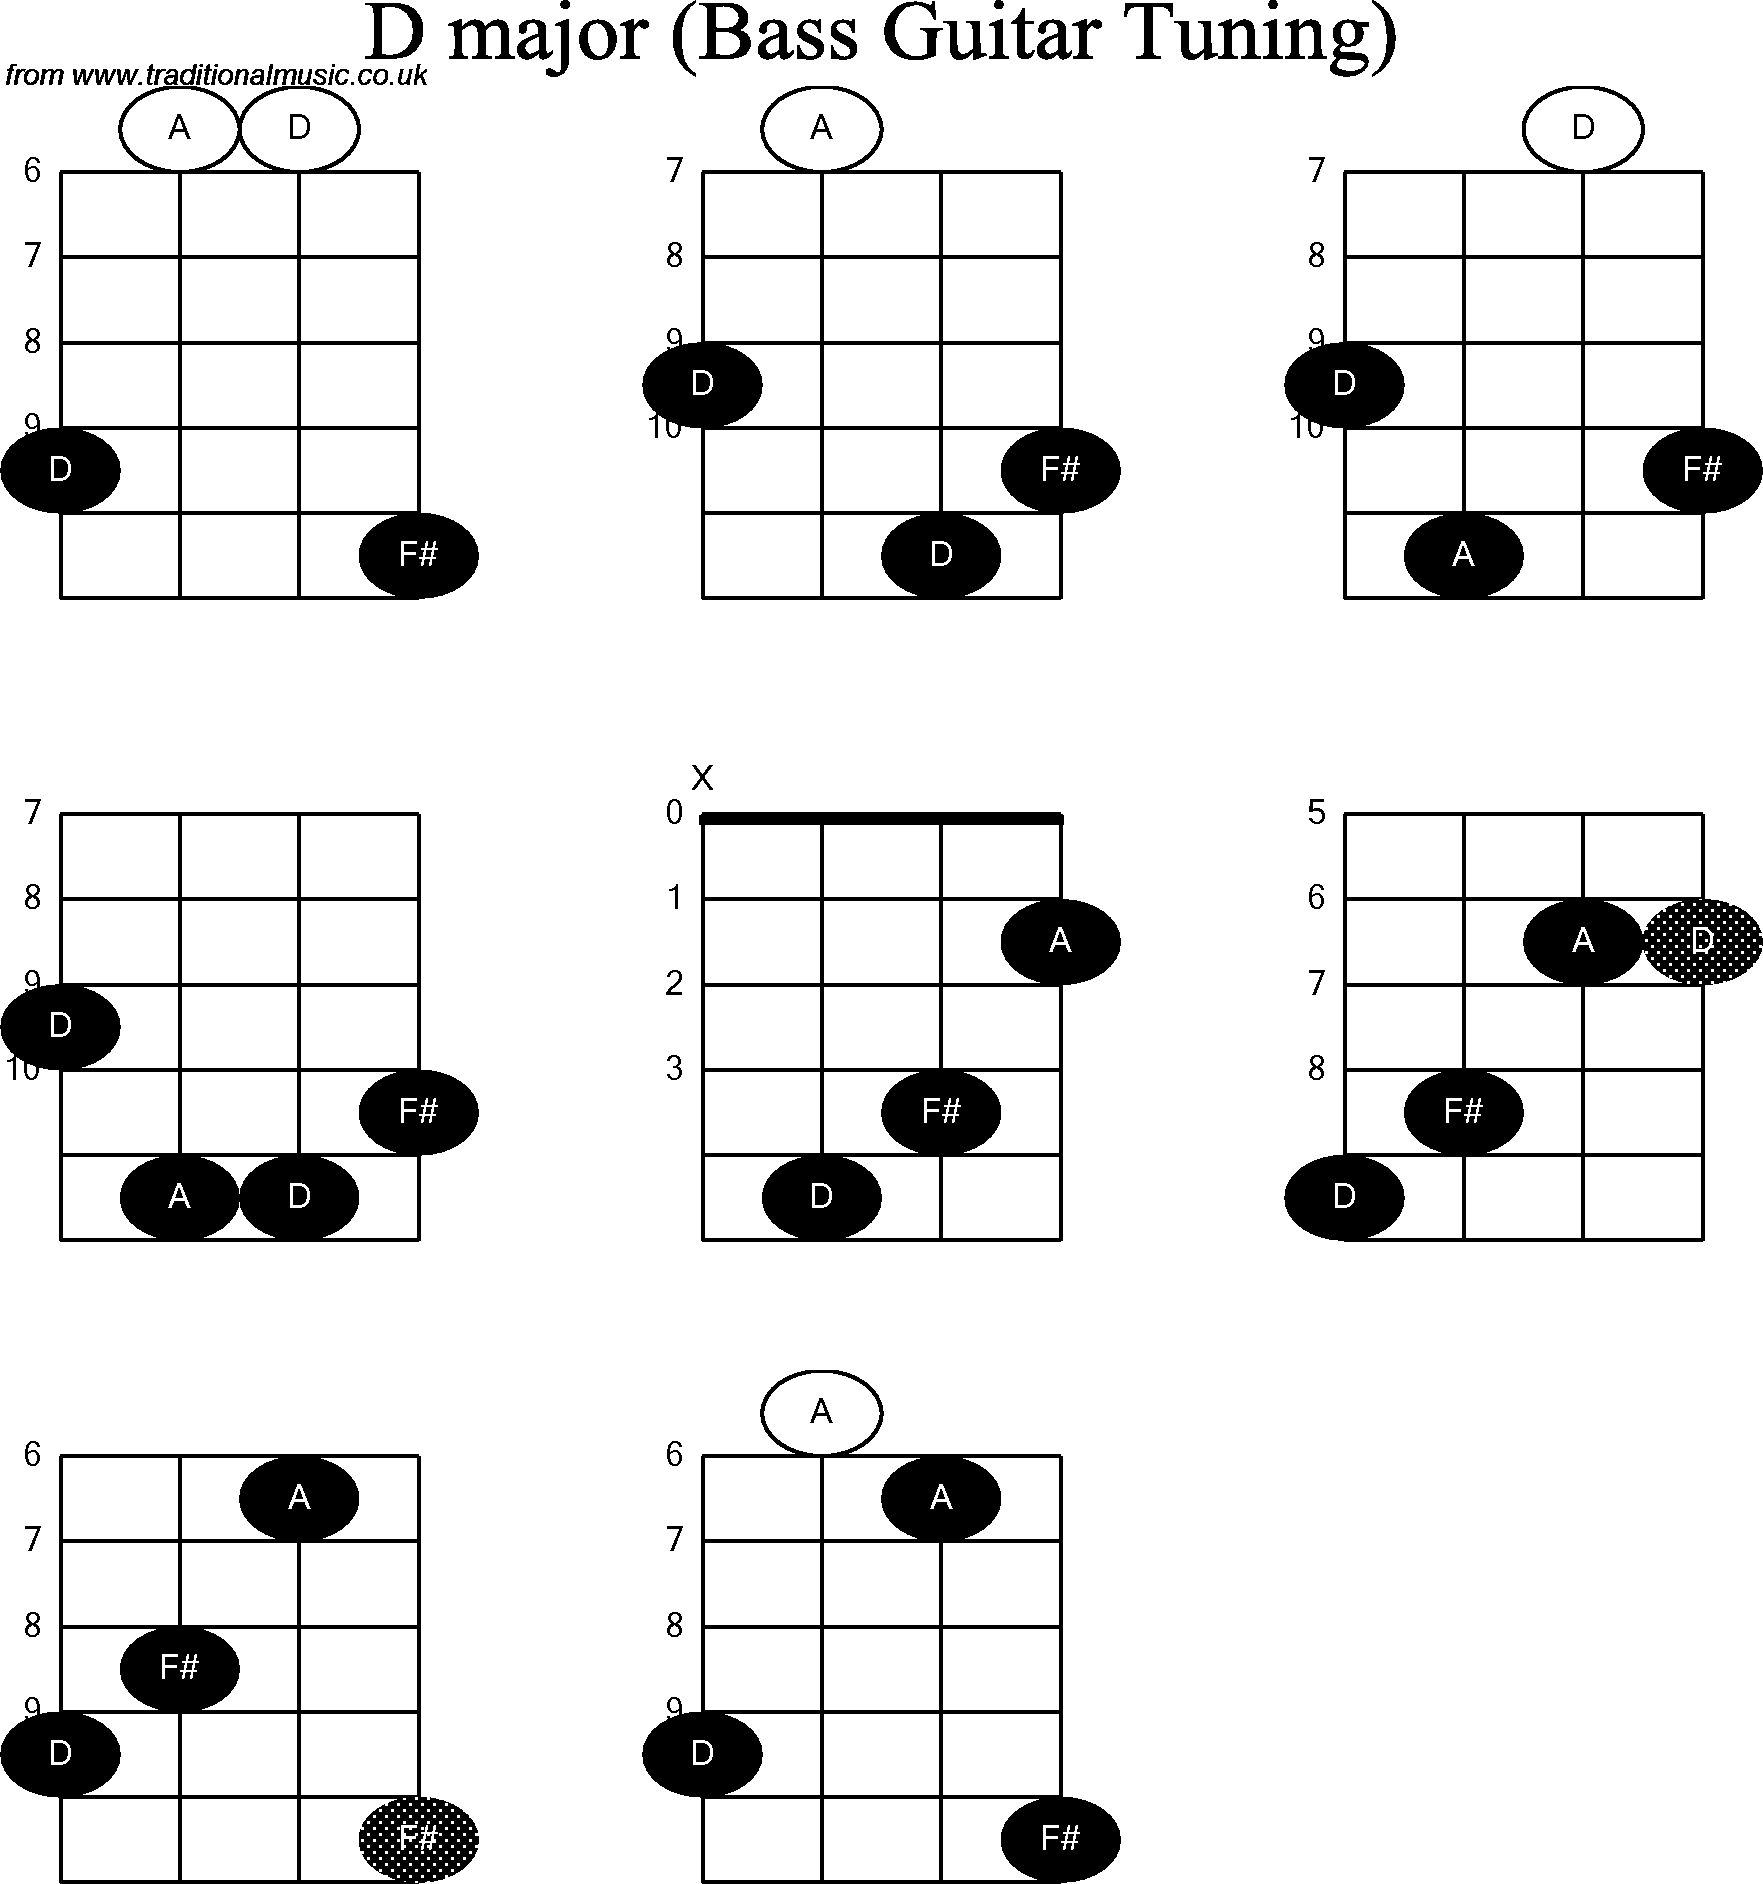 Bass Guitar Chord diagrams for: D